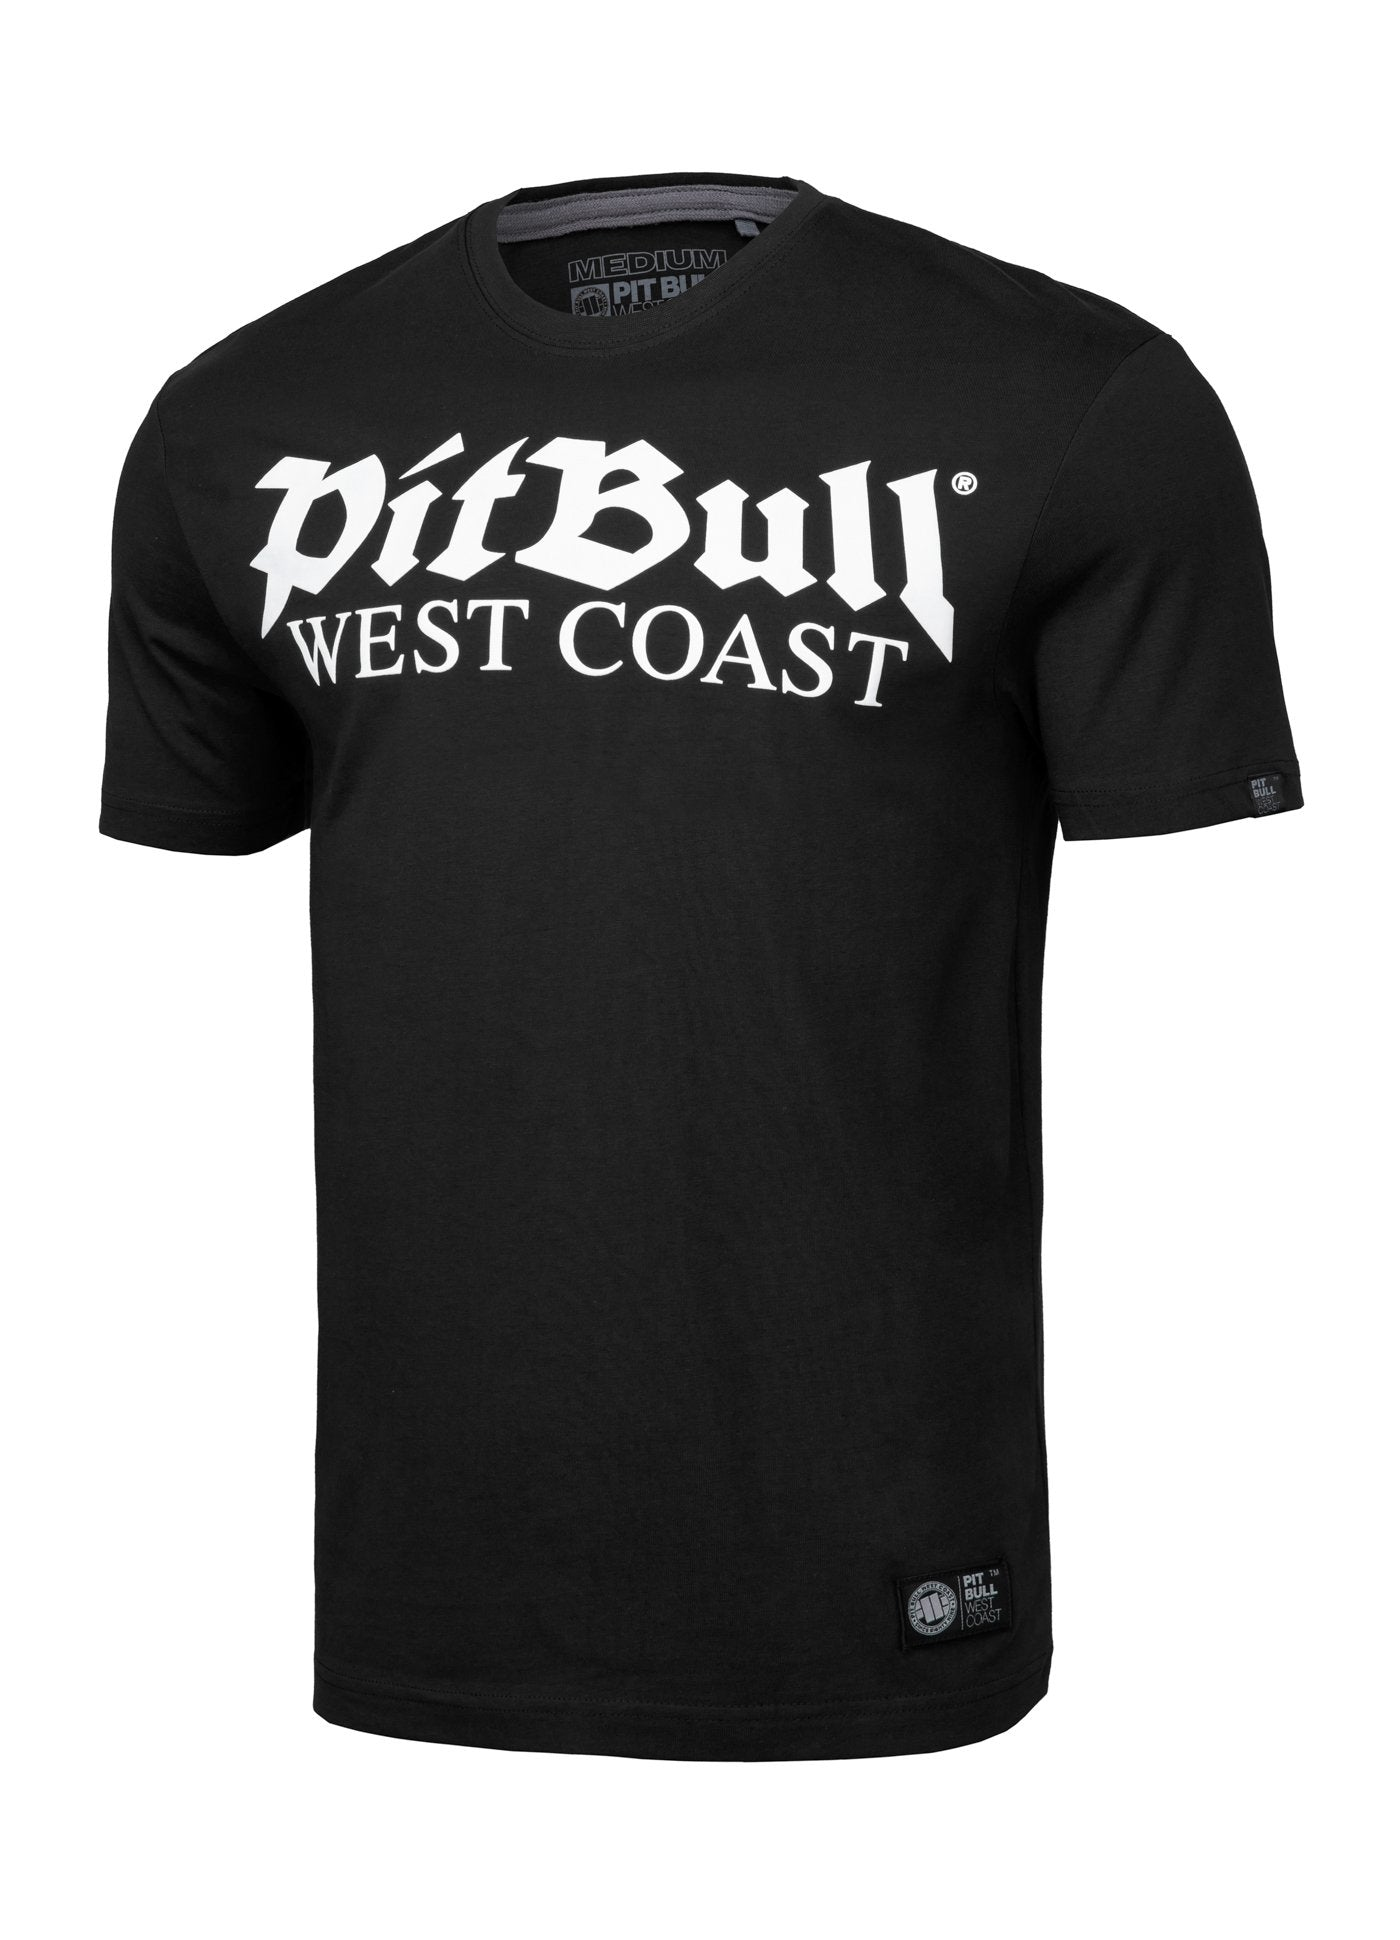 T-shirt OLD LOGO Black - pitbullwestcoast